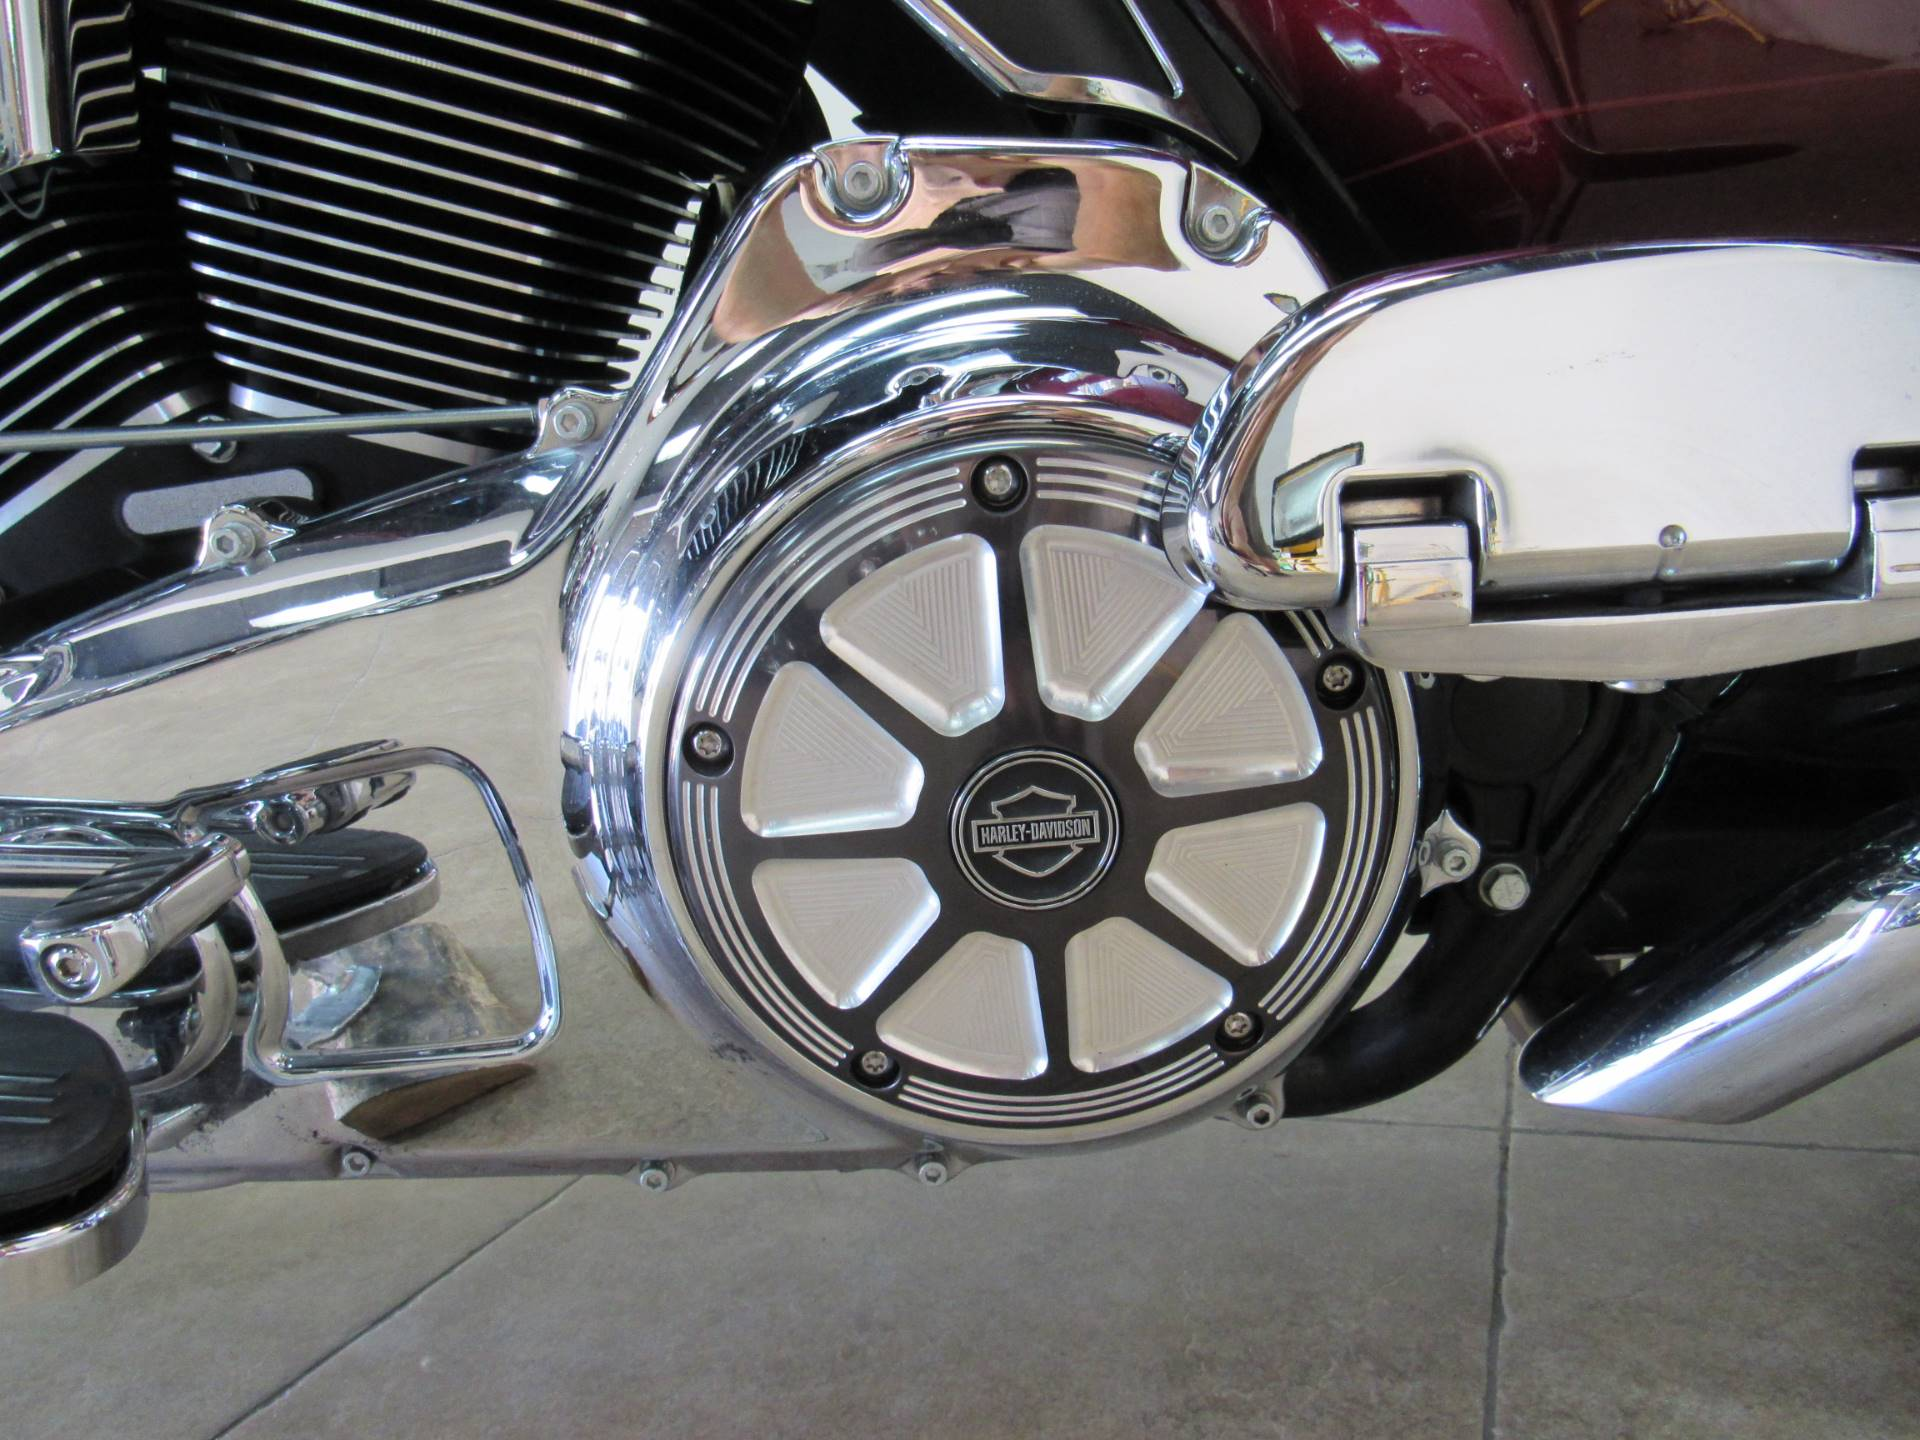 2014 Harley-Davidson Street Glide® Special in Temecula, California - Photo 29